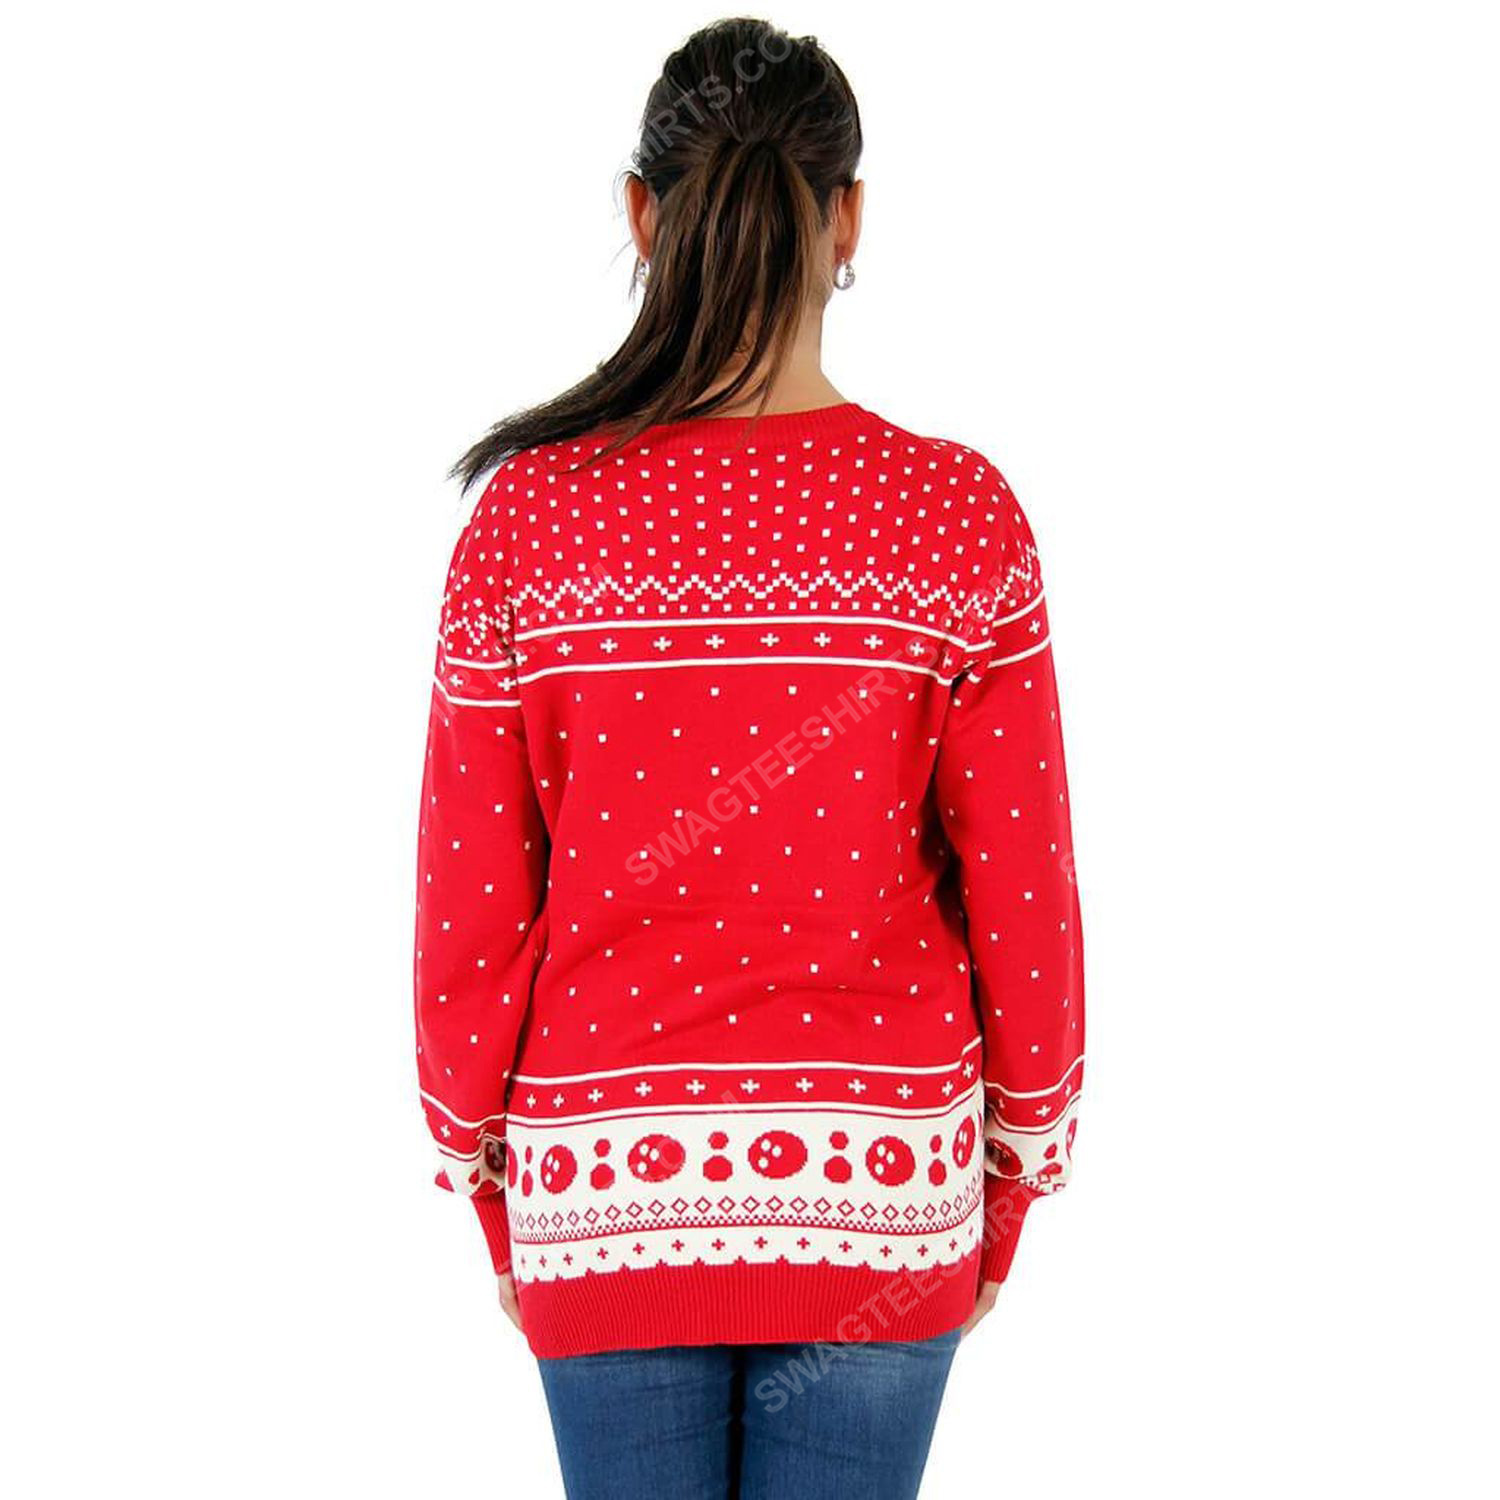 The big lebowski the dude abides full print ugly christmas sweater 3